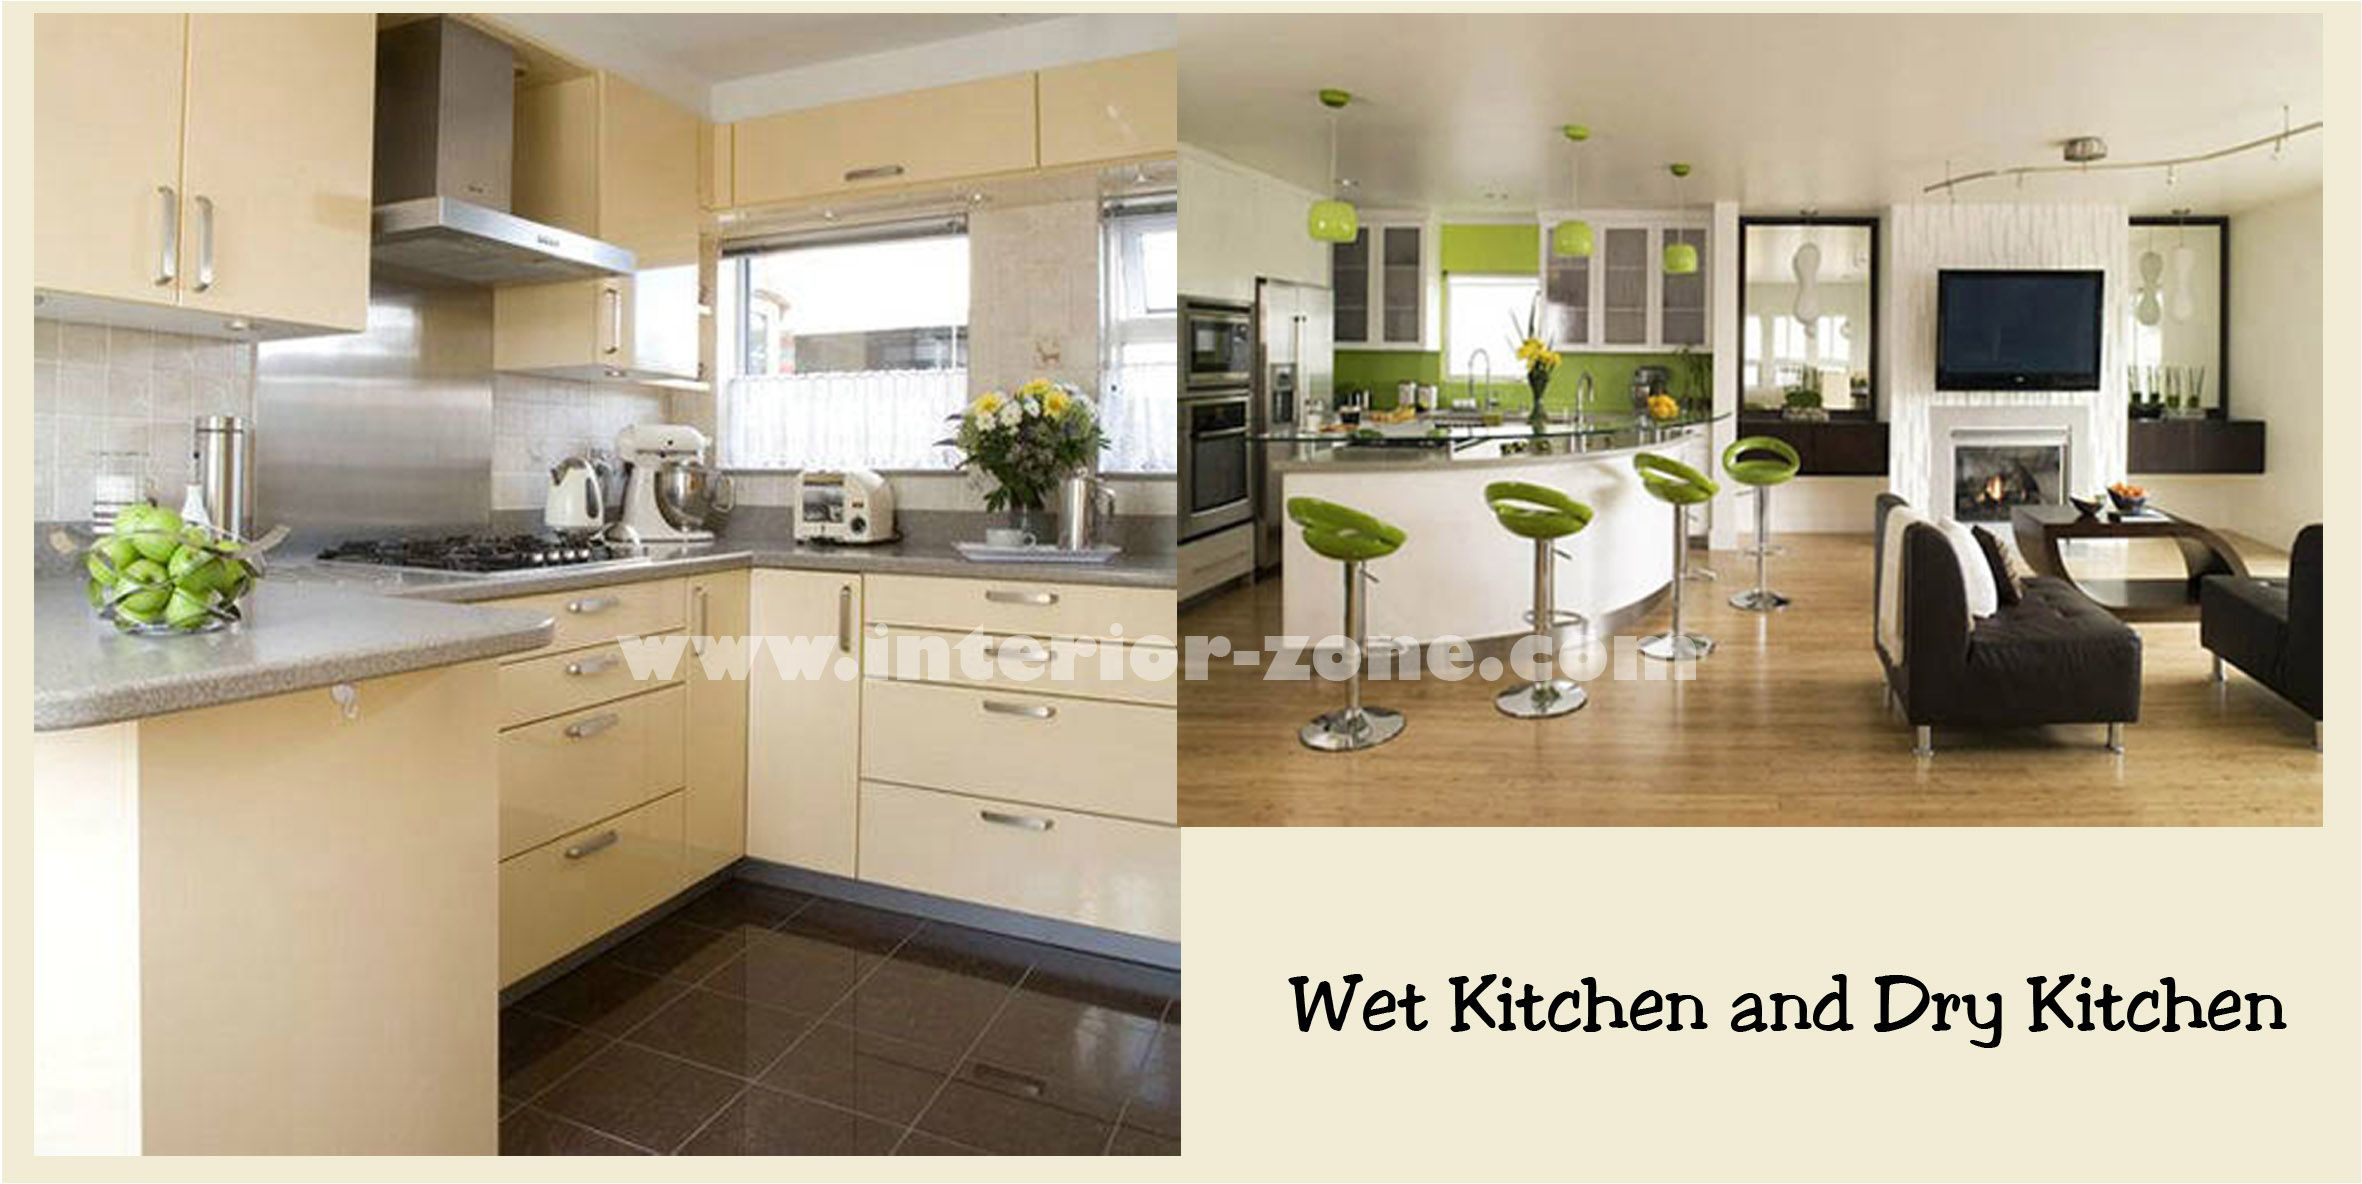 Wet and dry kitchen home designs pinterest bungalow and kitchens for Hdb wet and dry kitchen design